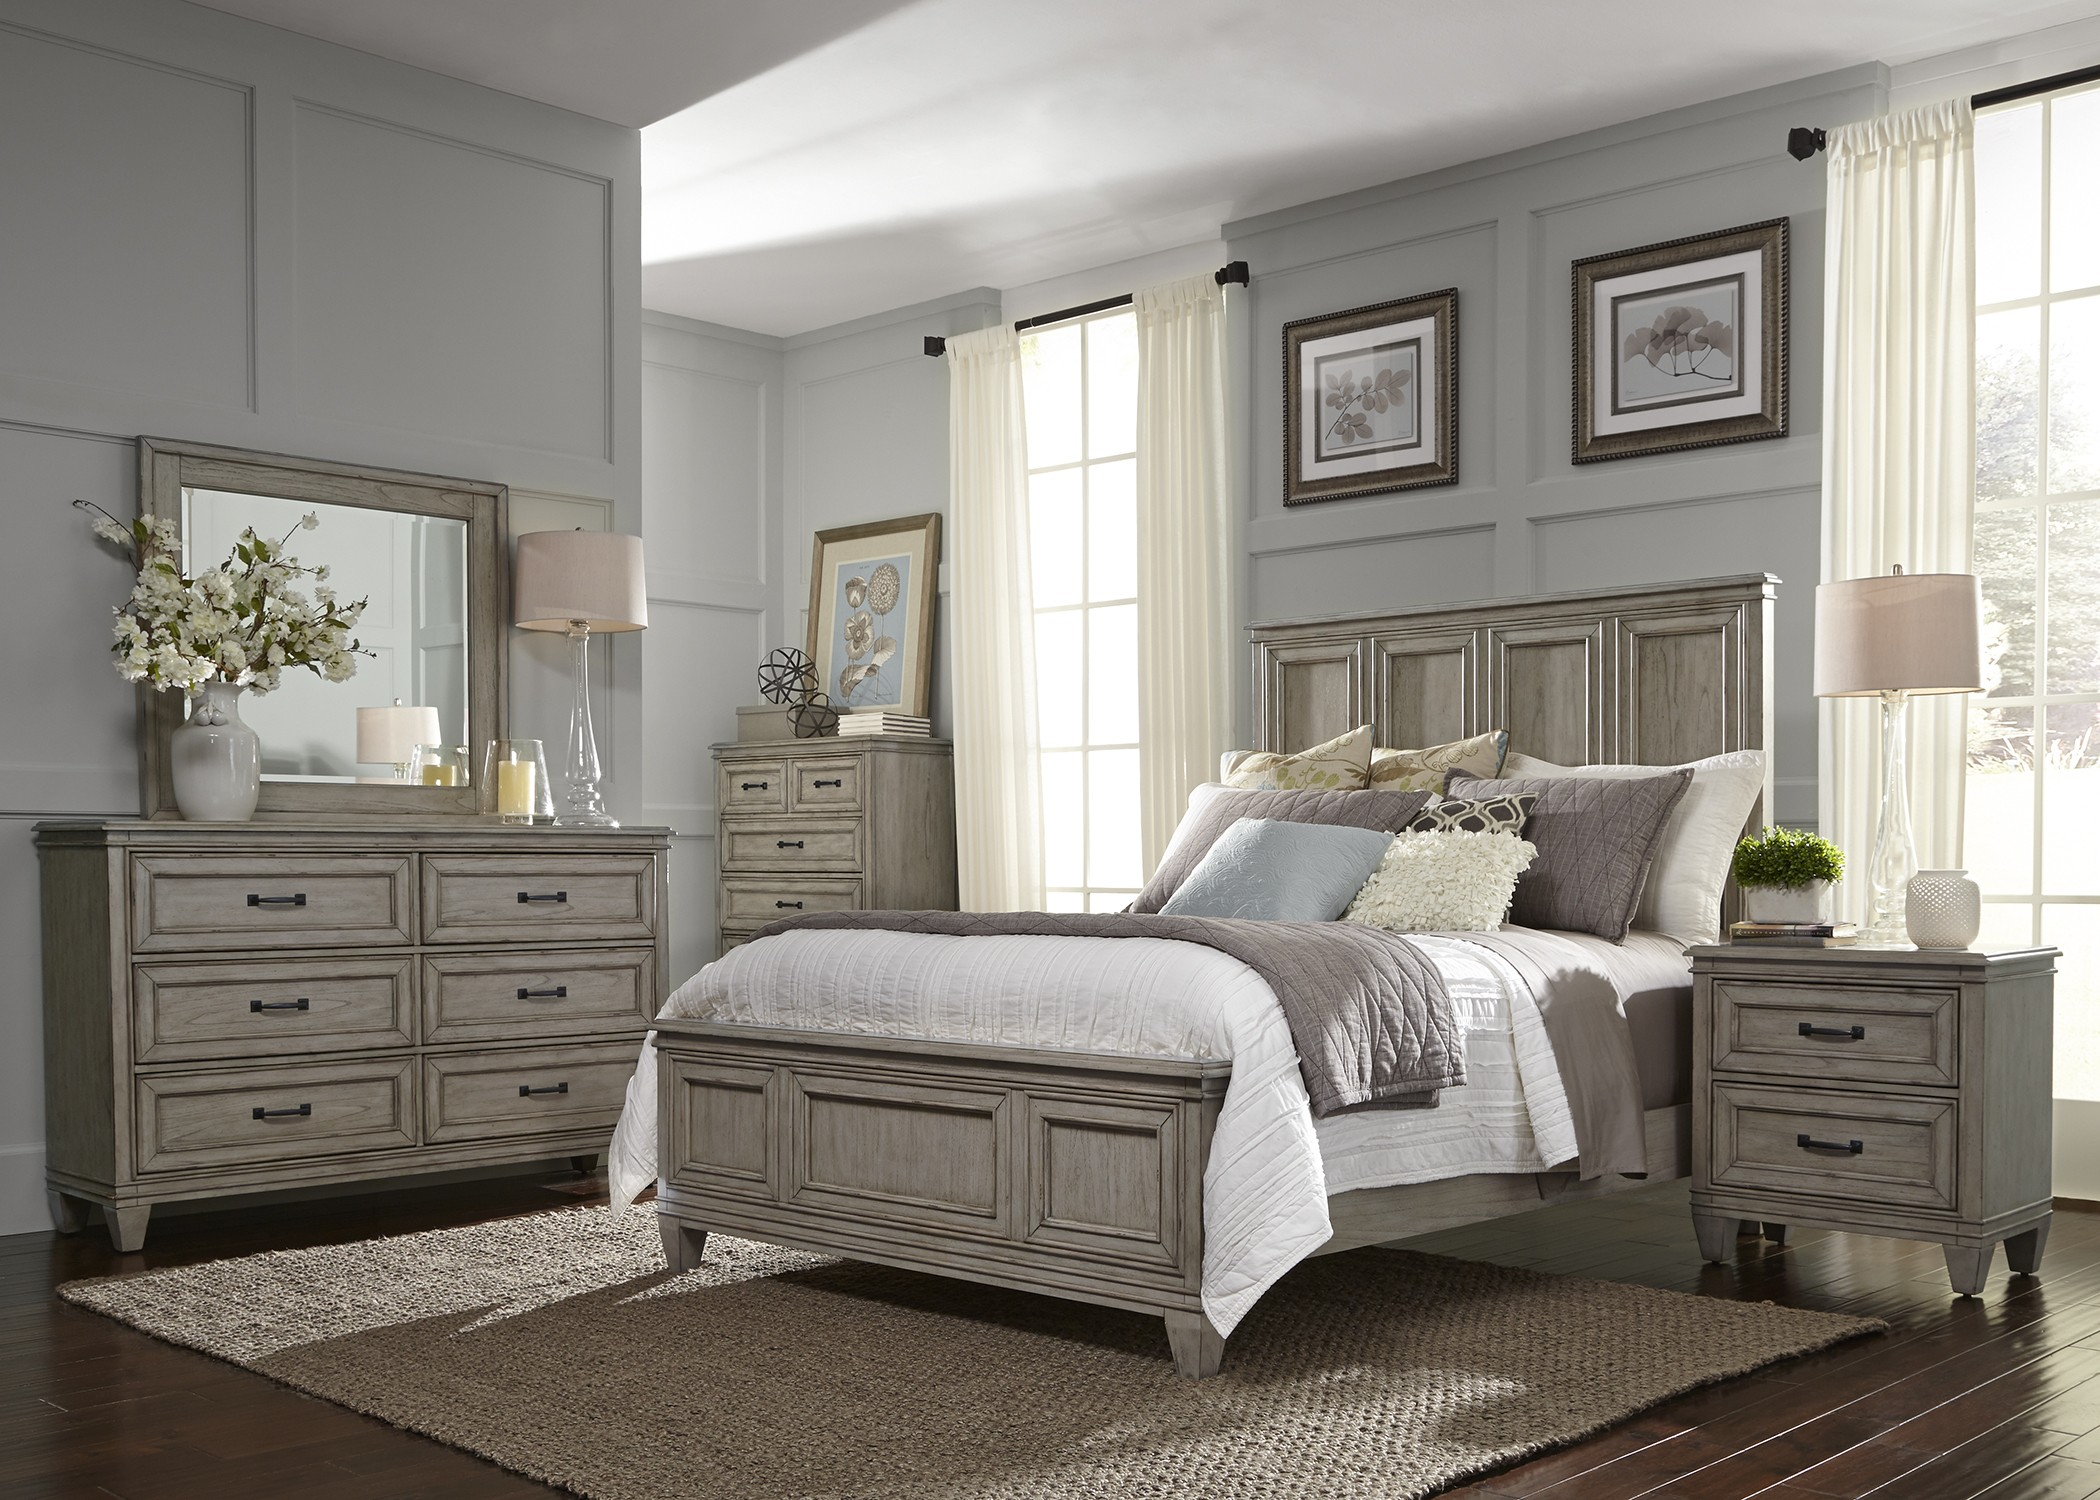 Bedroom Sets For Small Bedrooms: Grayton Grove Driftwood Panel Bedroom Set From Liberty